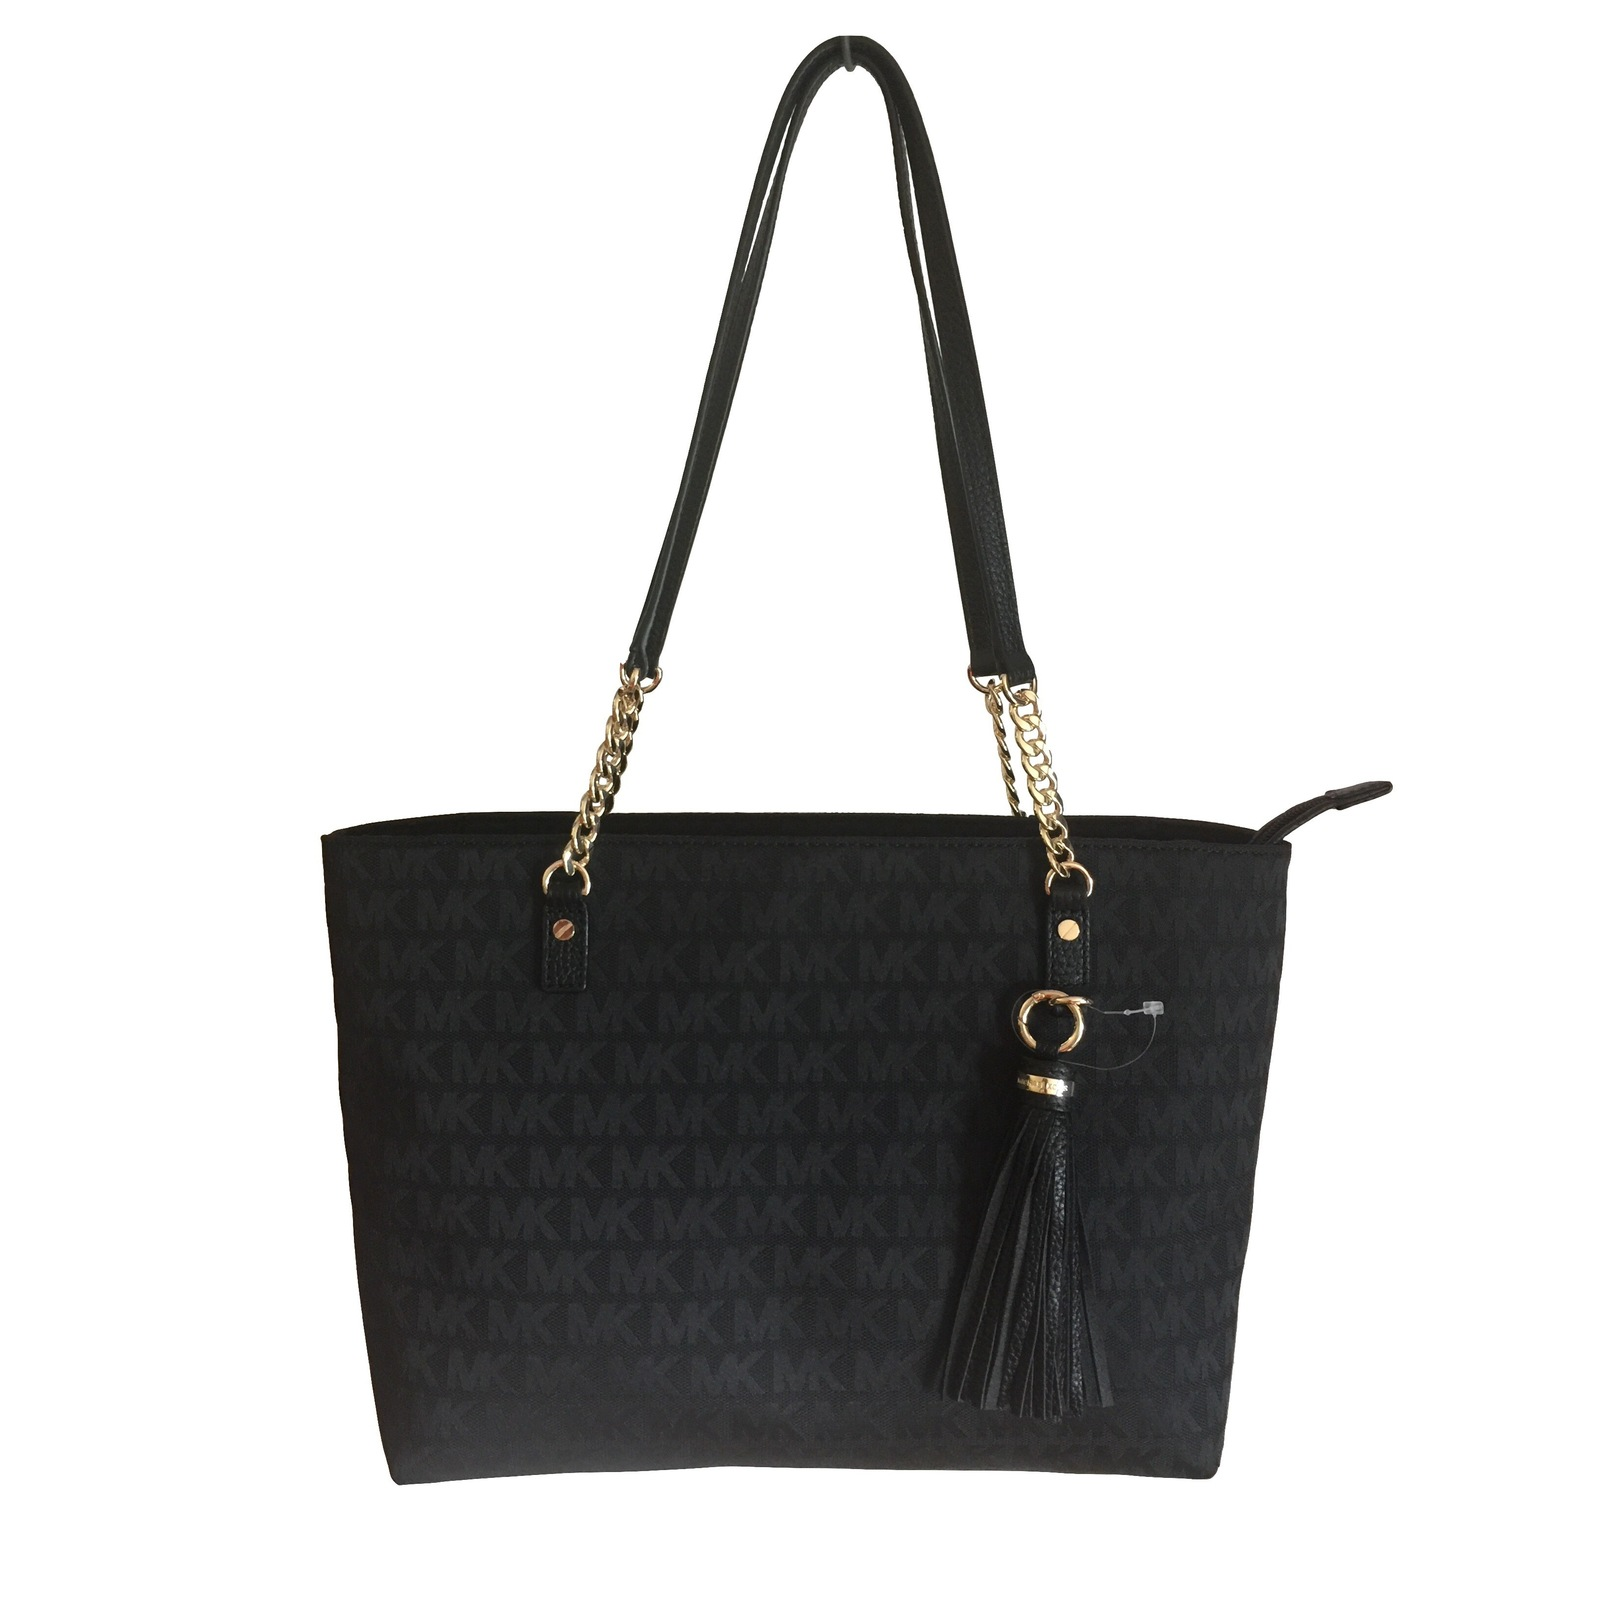 2edc9fb6b1ff Img 6233. Img 6233. Previous. MICHAEL KORS Jet Set Tassel Chain Tote Black  MK Logo Jacquard Shoulder Bag